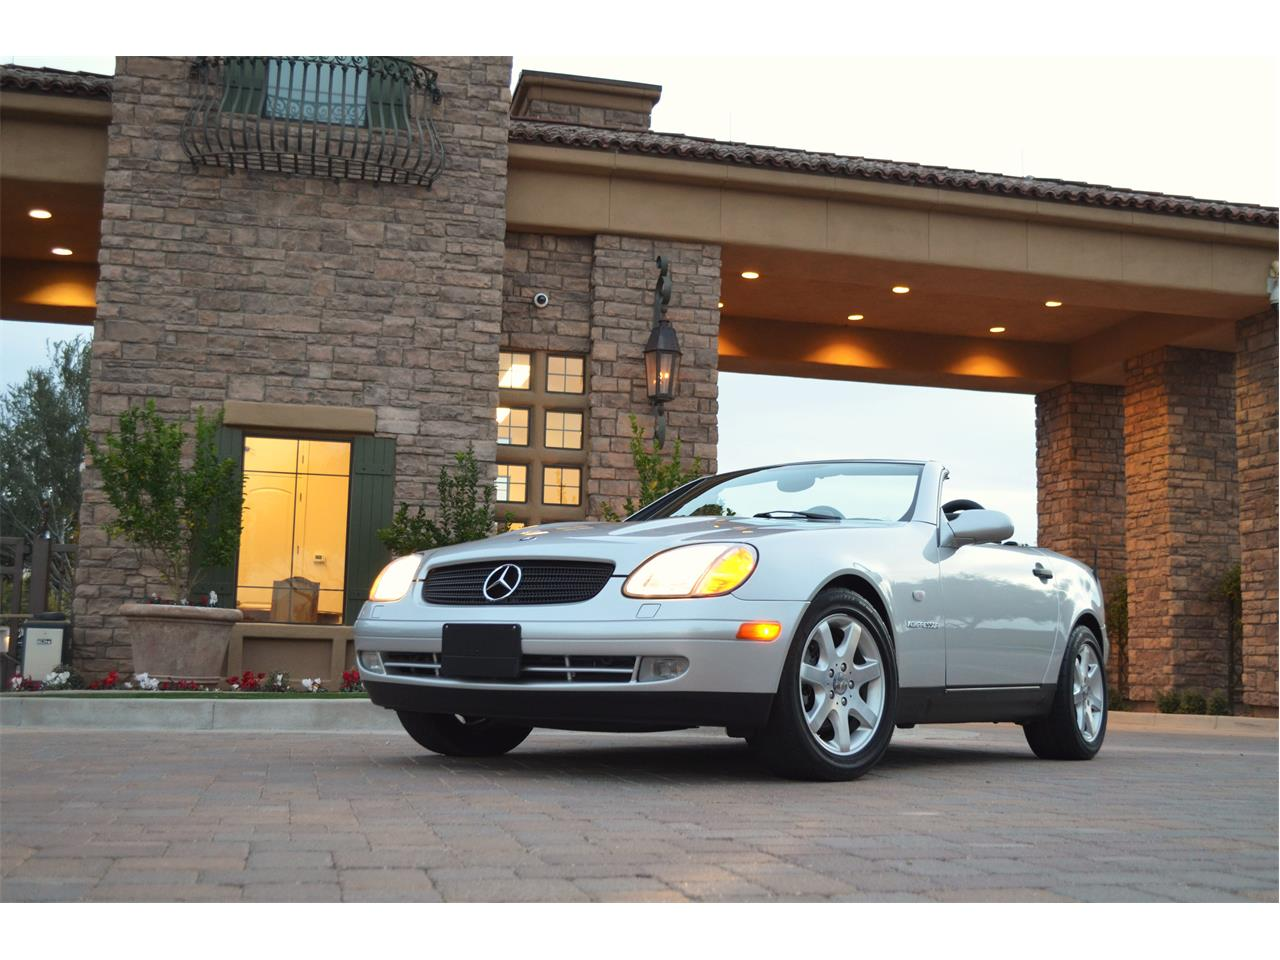 for sale 1999 mercedes-benz slk230 in chandler , arizona cars - chandler, az at geebo